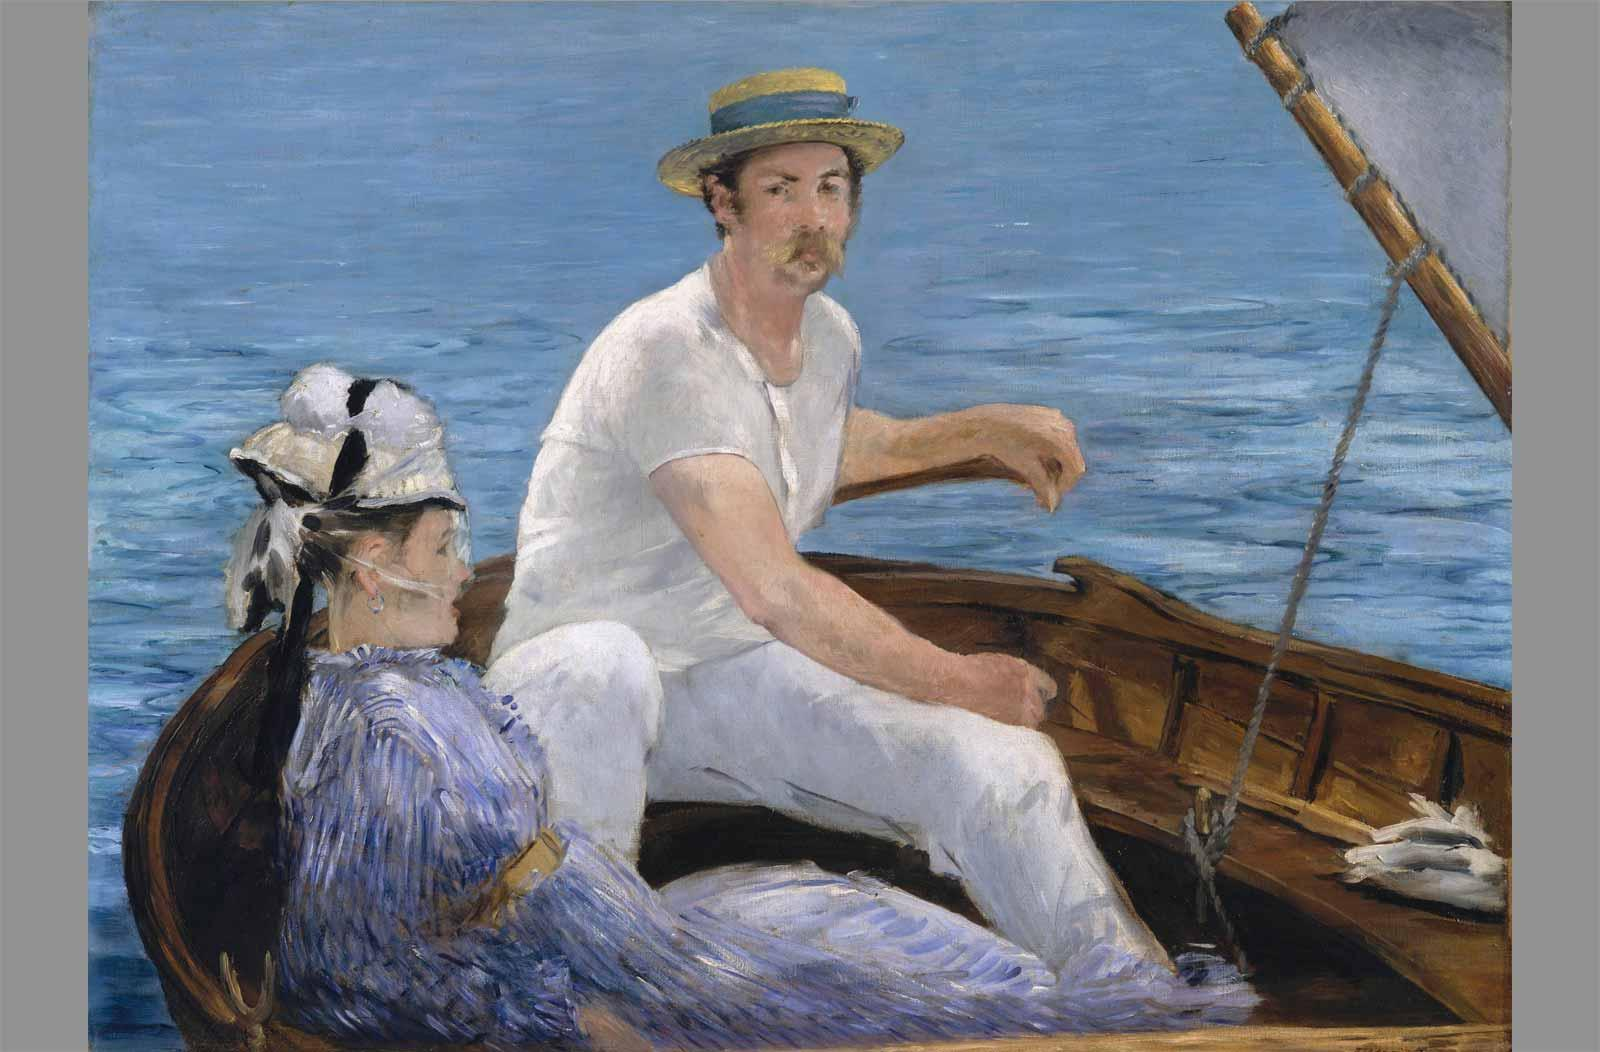 Édouard Manet. Boating, 1874–75.